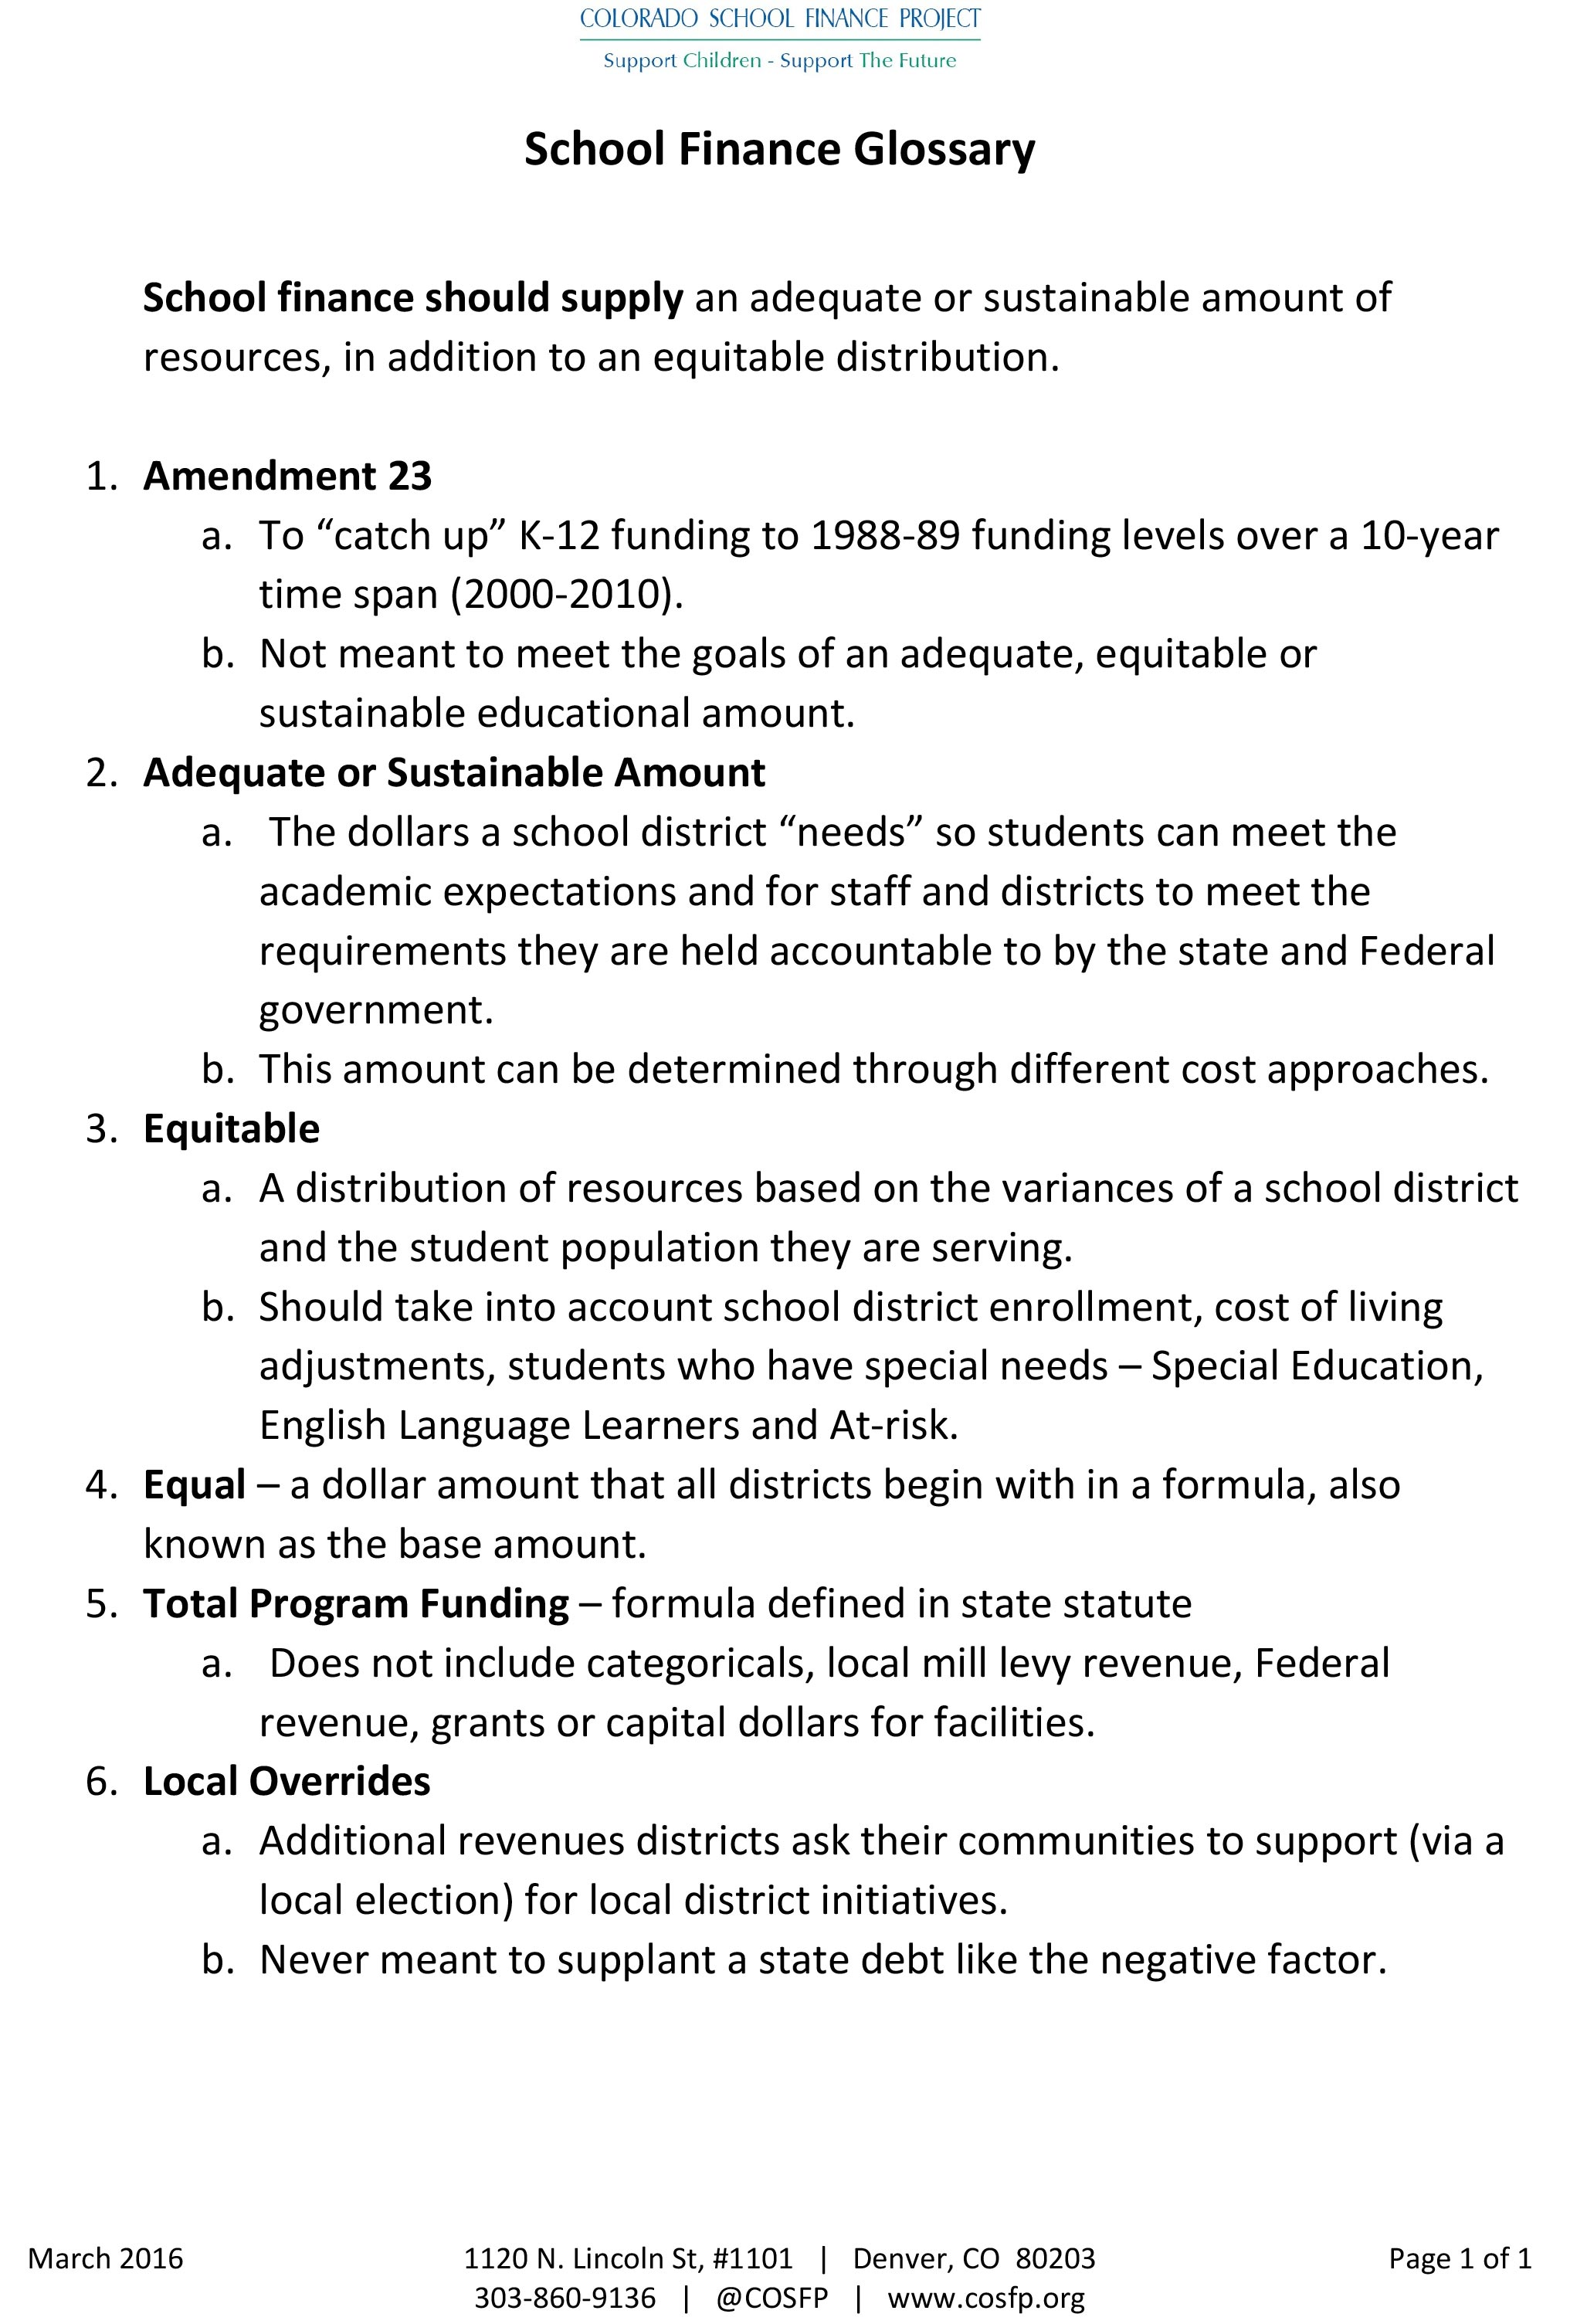 School Finance Glossary